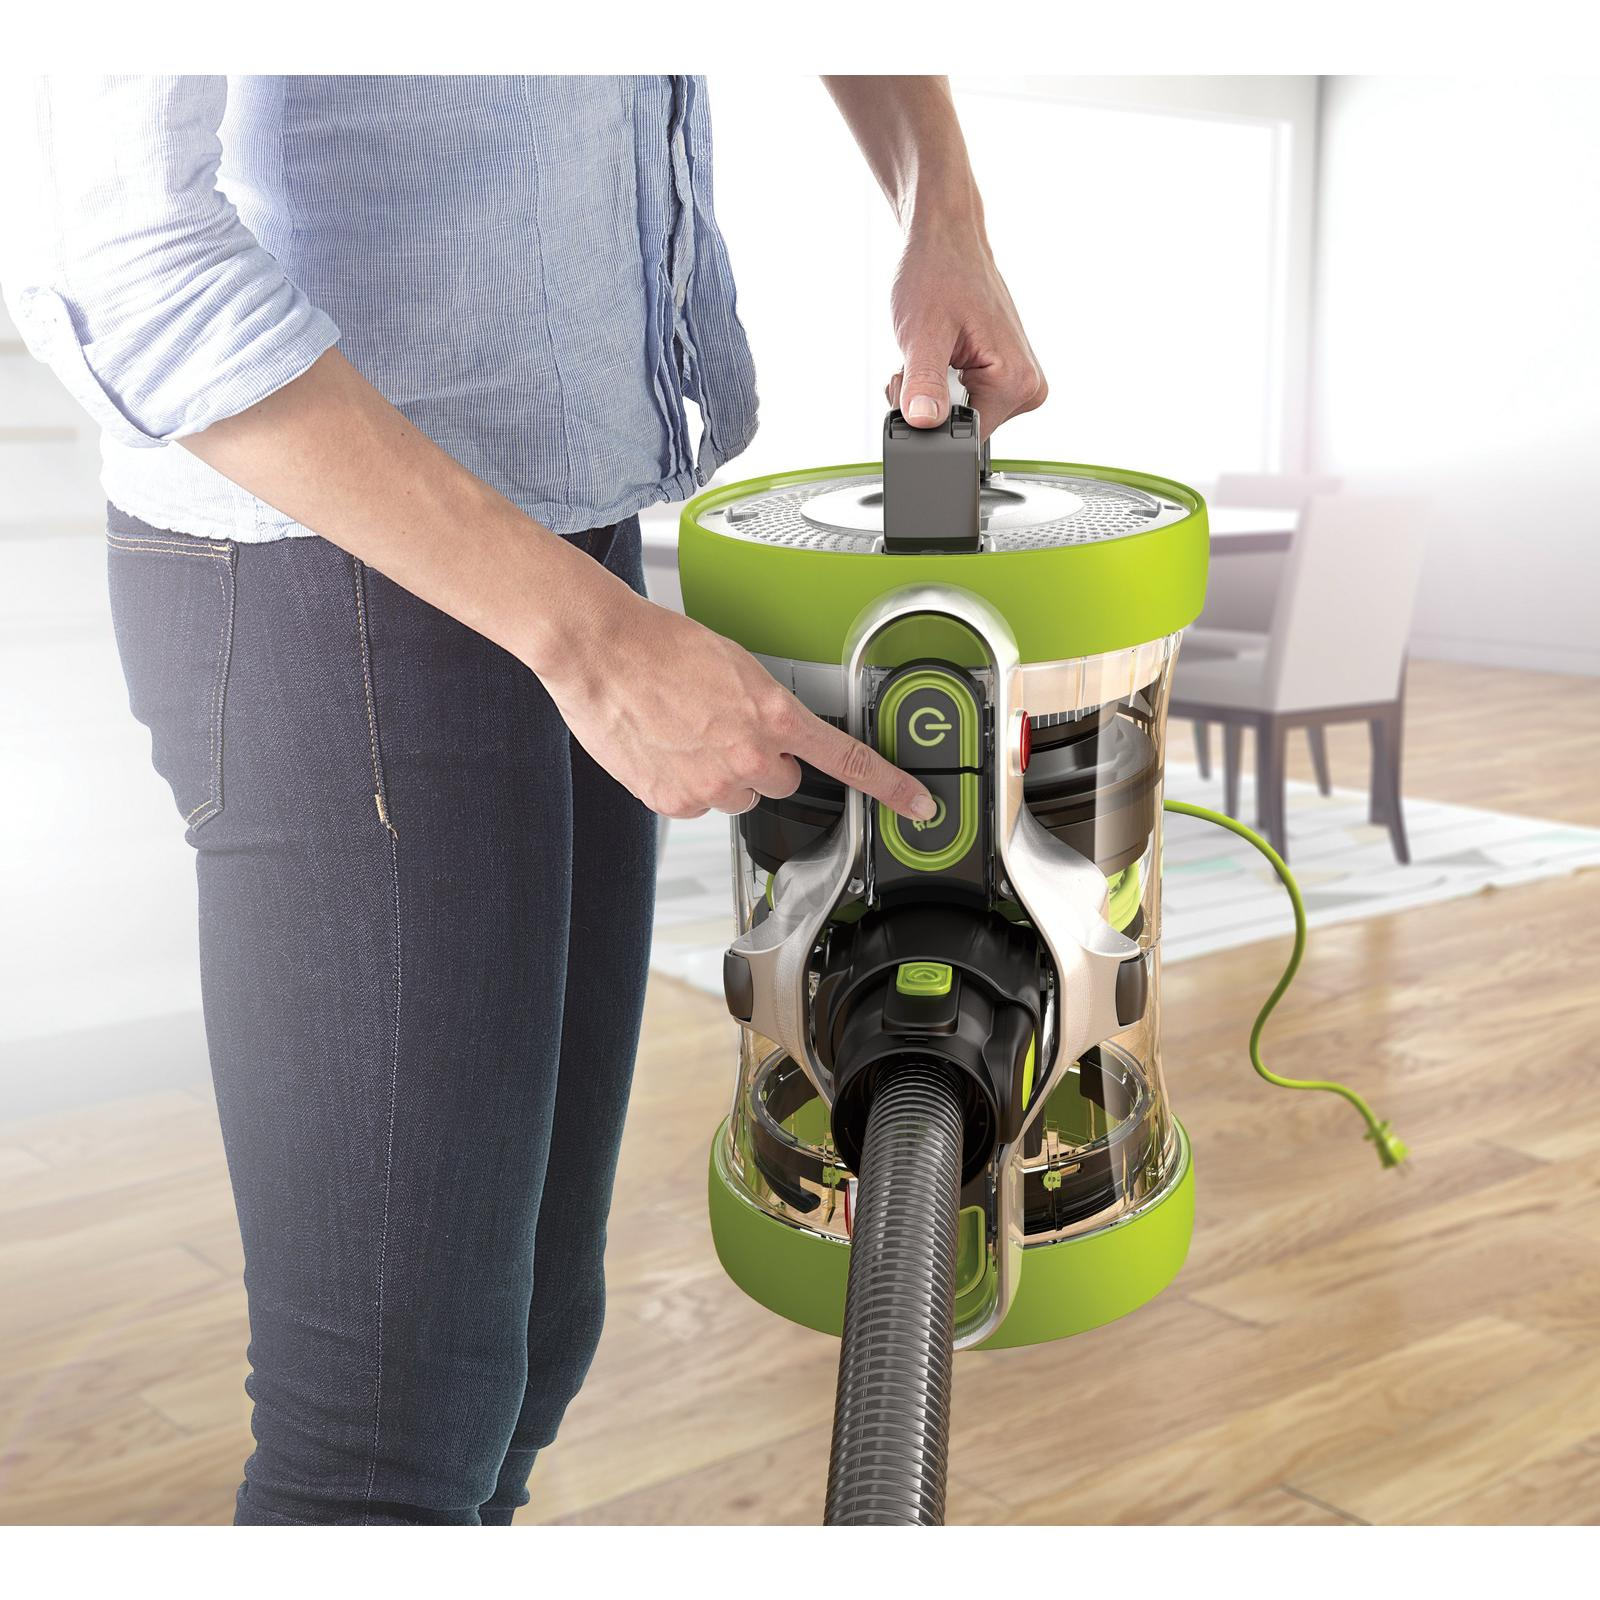 New Hoover Multi Bagless Canister Vacuum